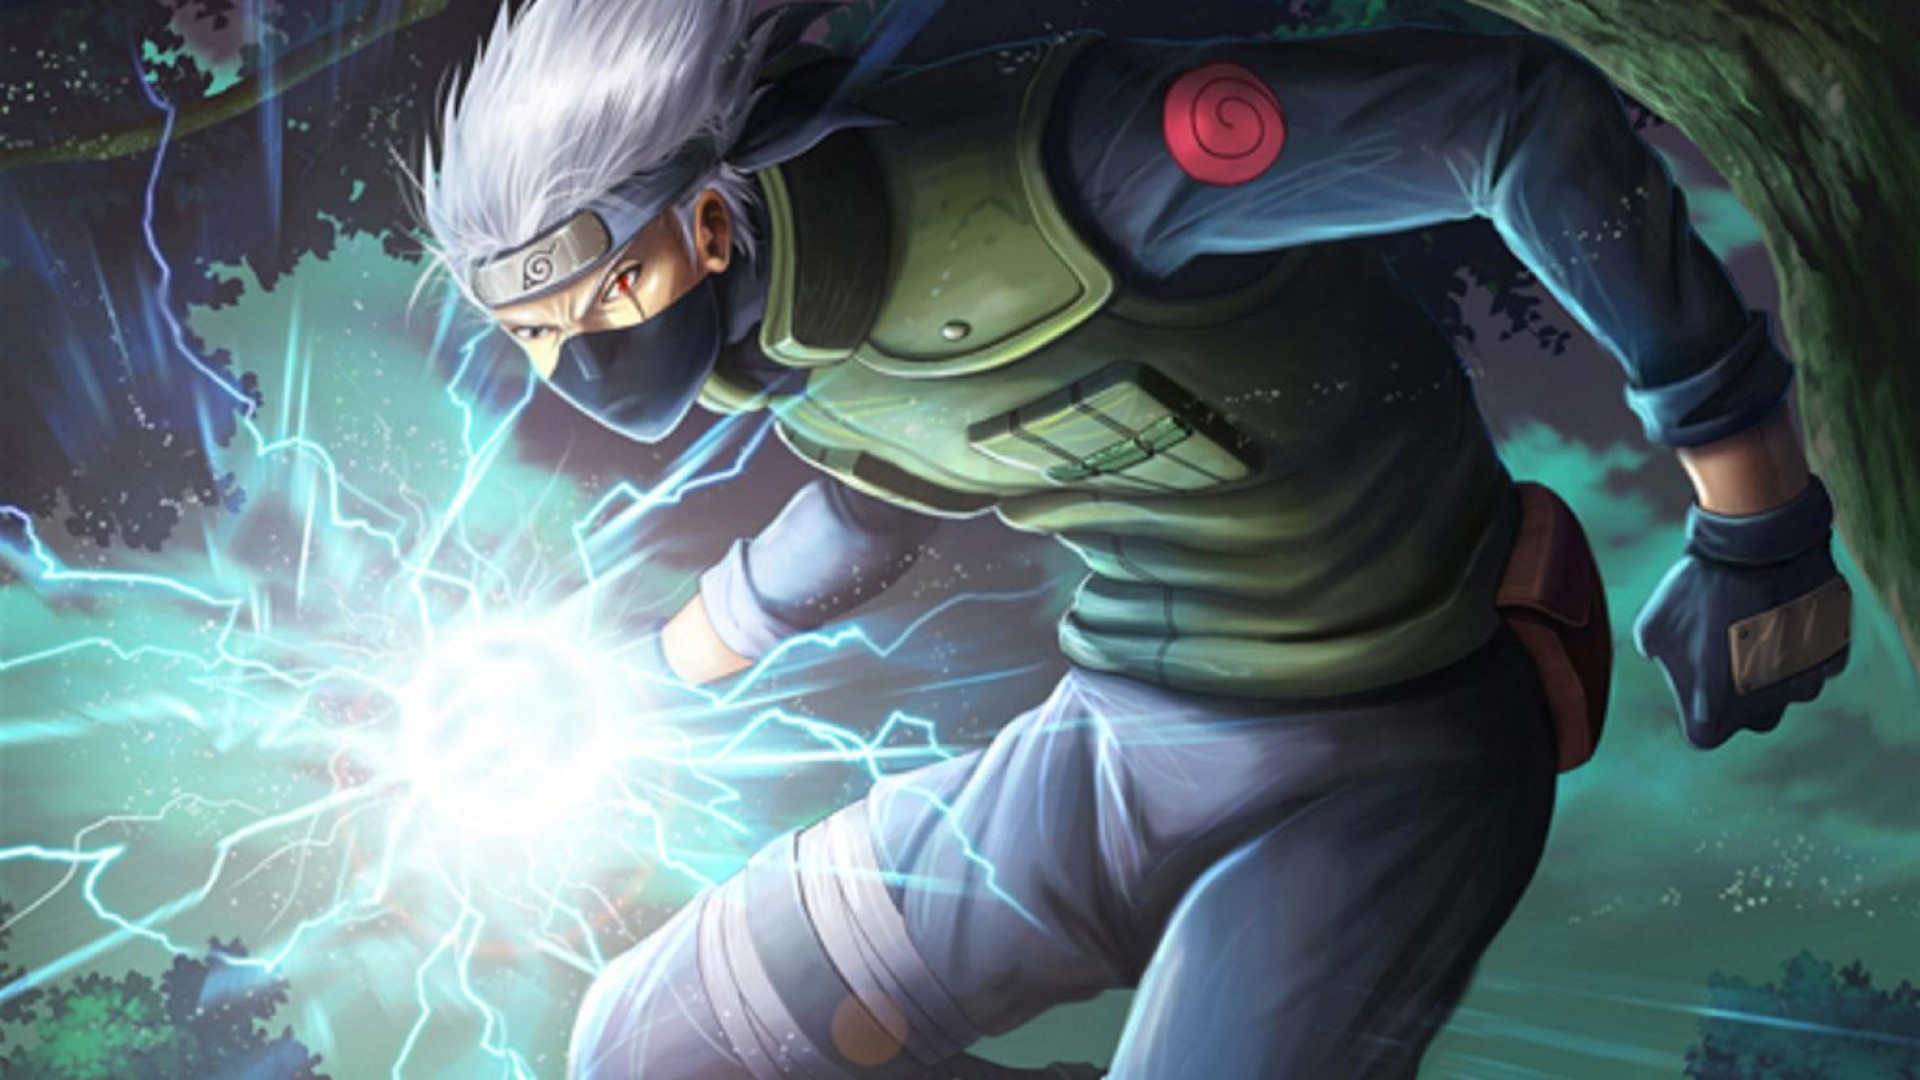 Kakashi Wallpaper Iphone Hatake Kakashi Wallpapers High Quality Download Free